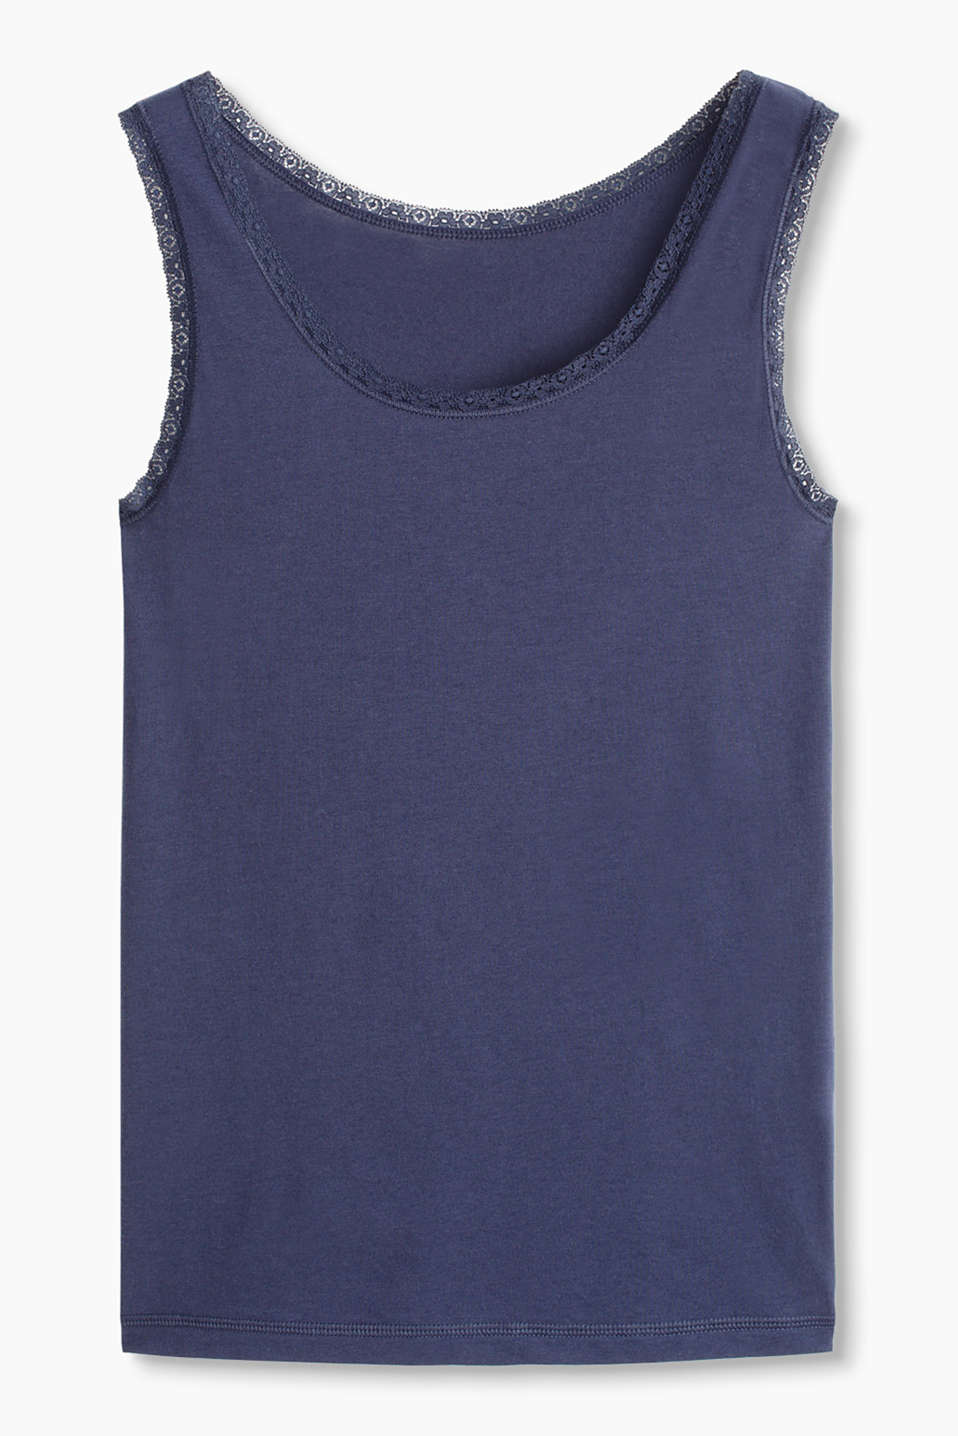 Esprit - Basic-Top aus Baumwolle/Stretch